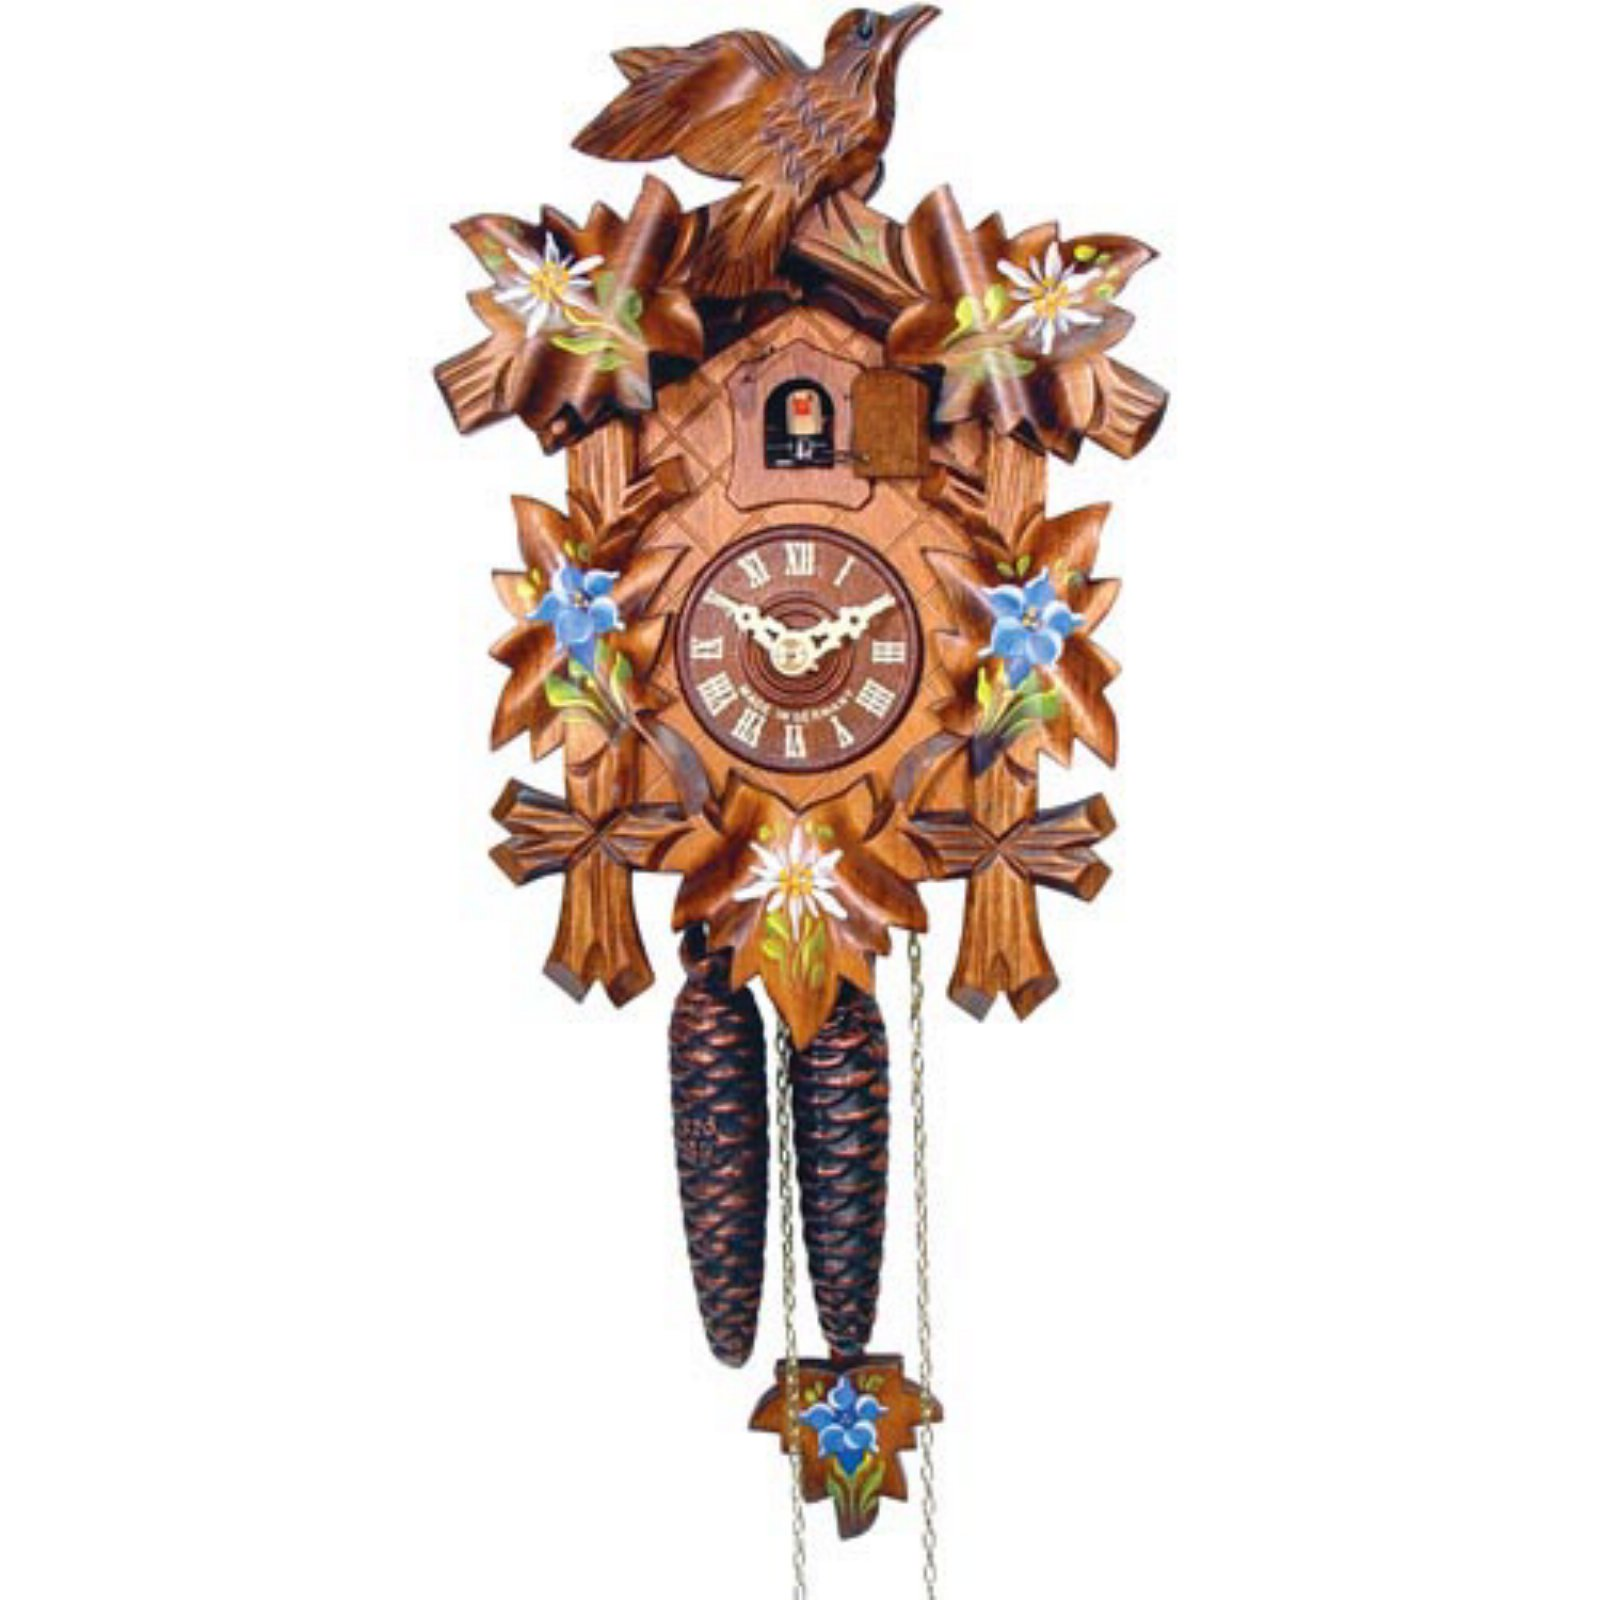 9 In. 5 Leaf with Blue Flowers and Edelweiss Cuckoo Clock by Alexander Taron